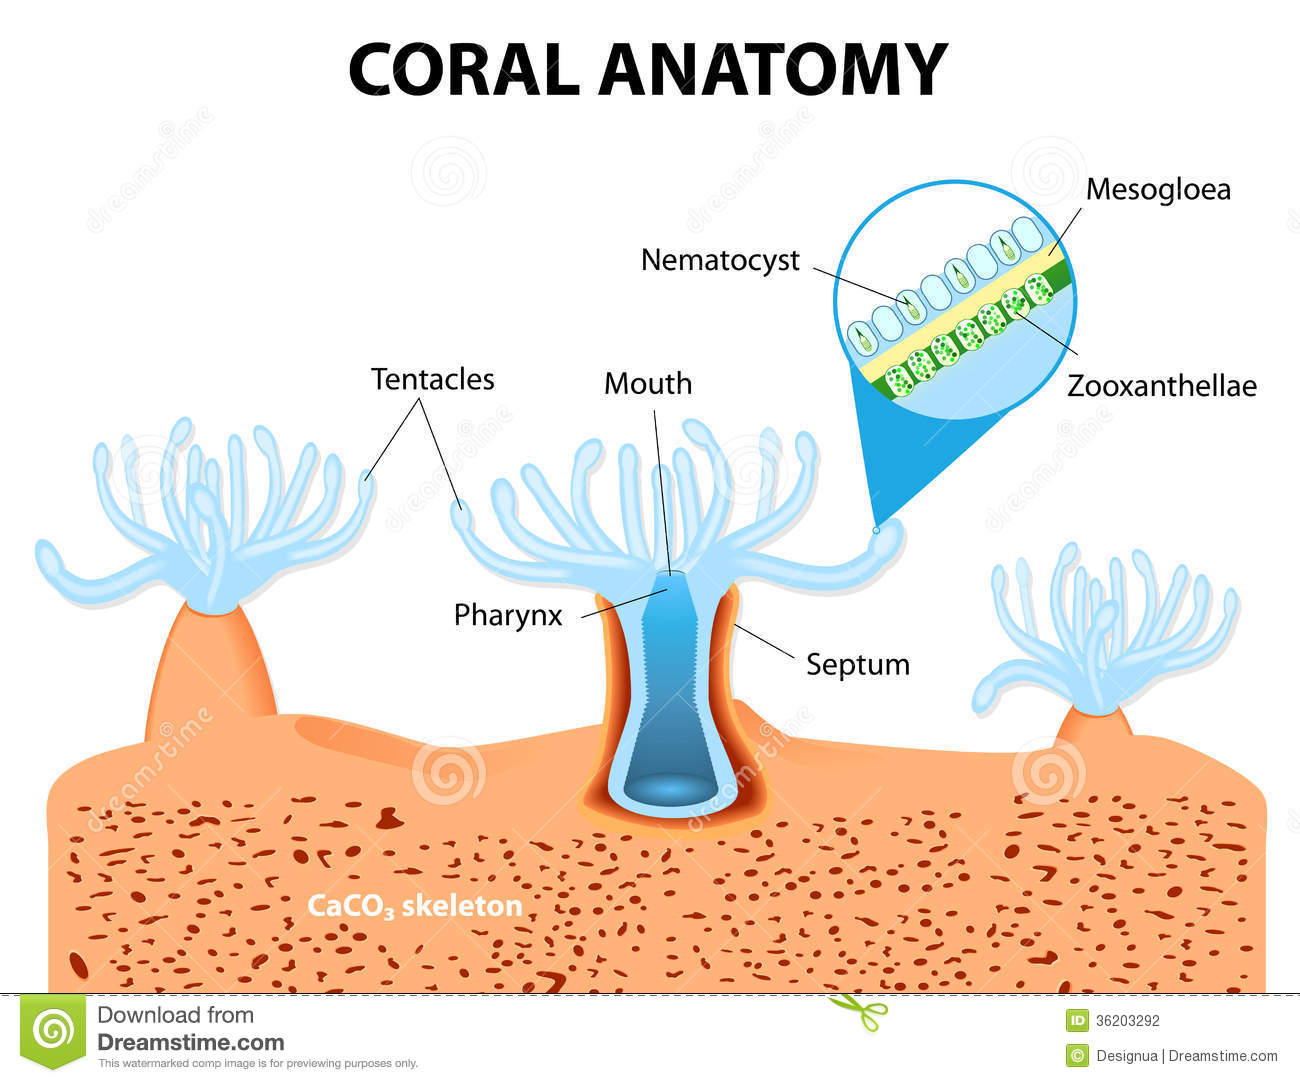 What forms the structure called a coral reef.